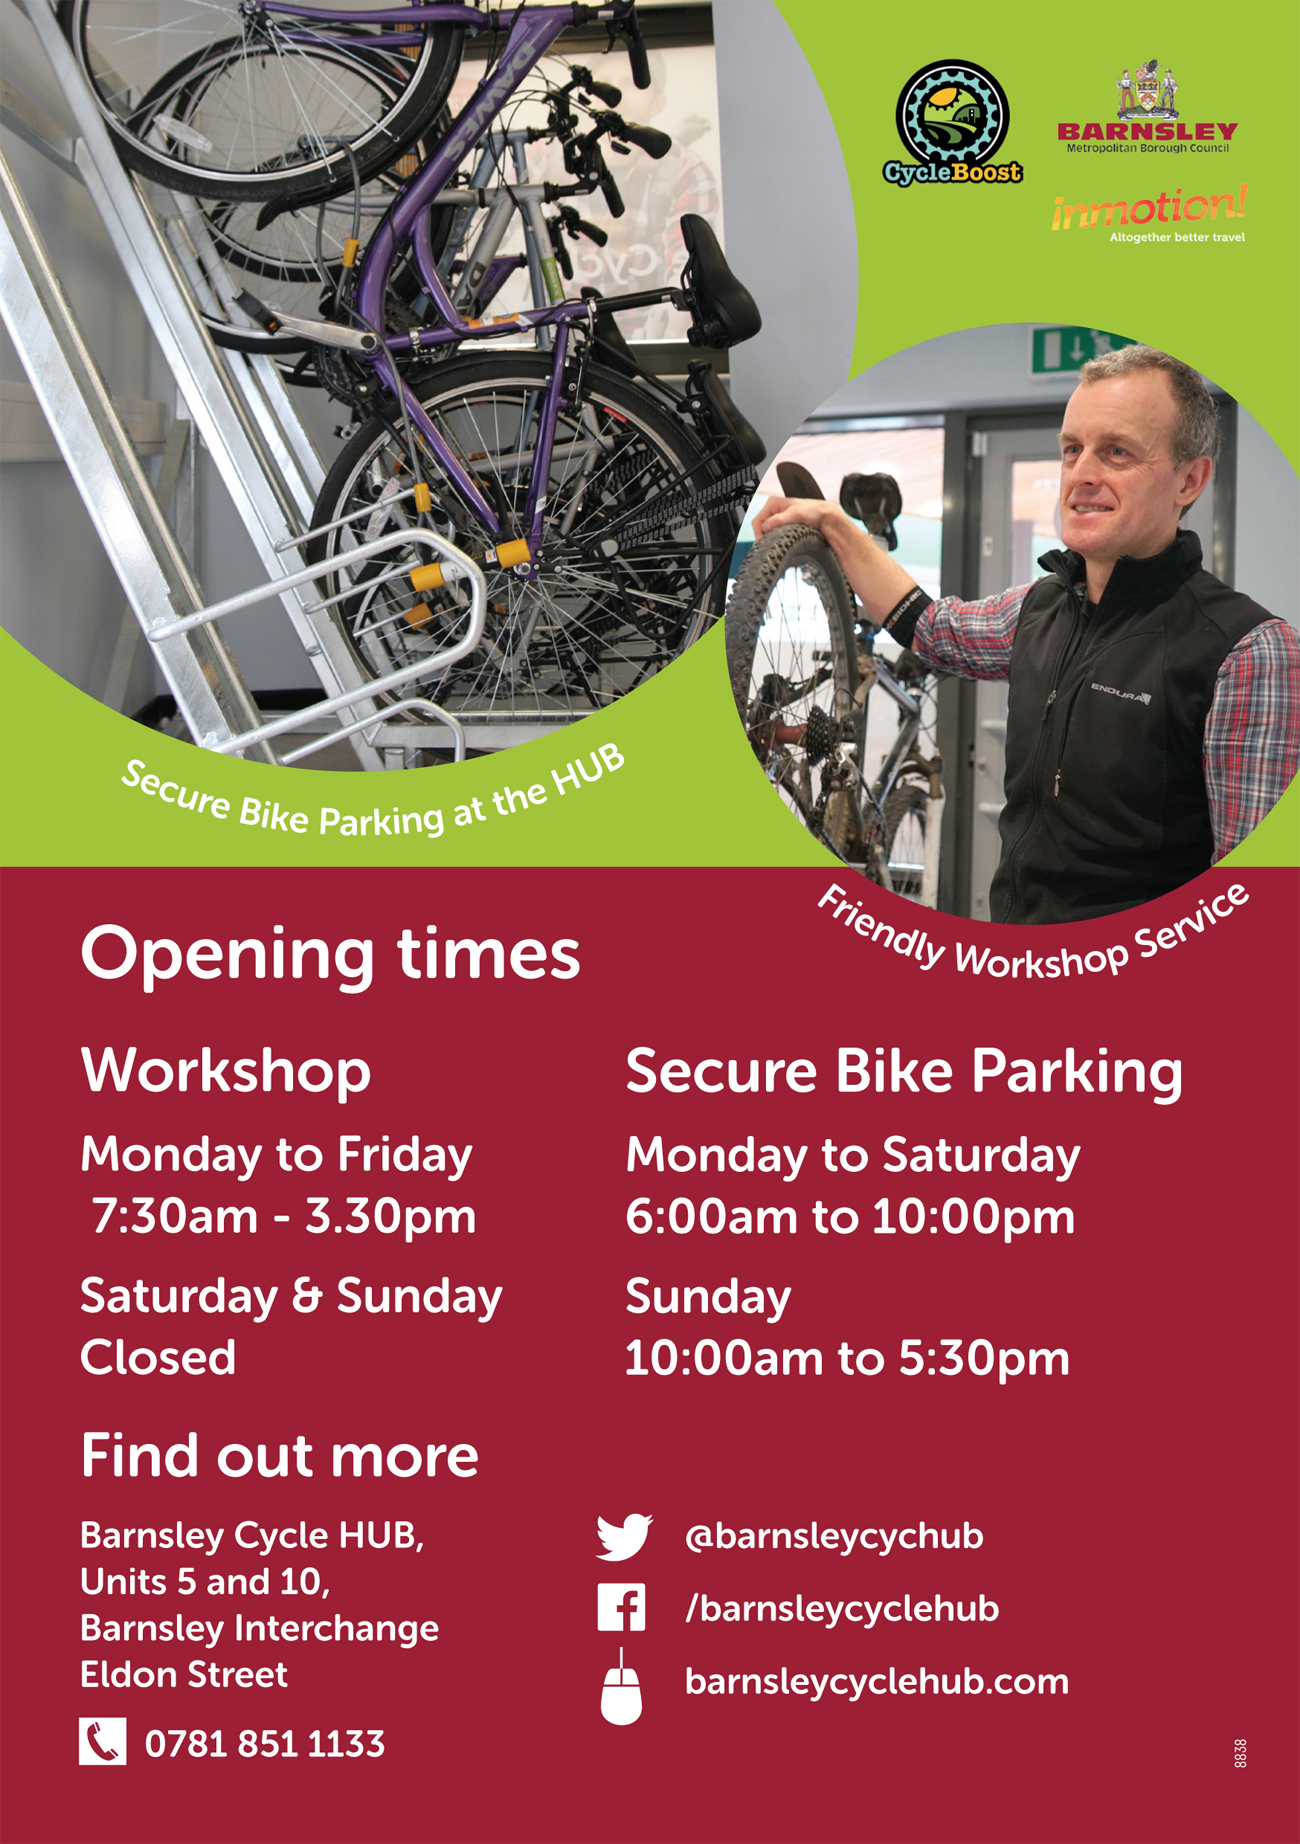 8838_Barnsley cycle hub_launch leaflet Part 22